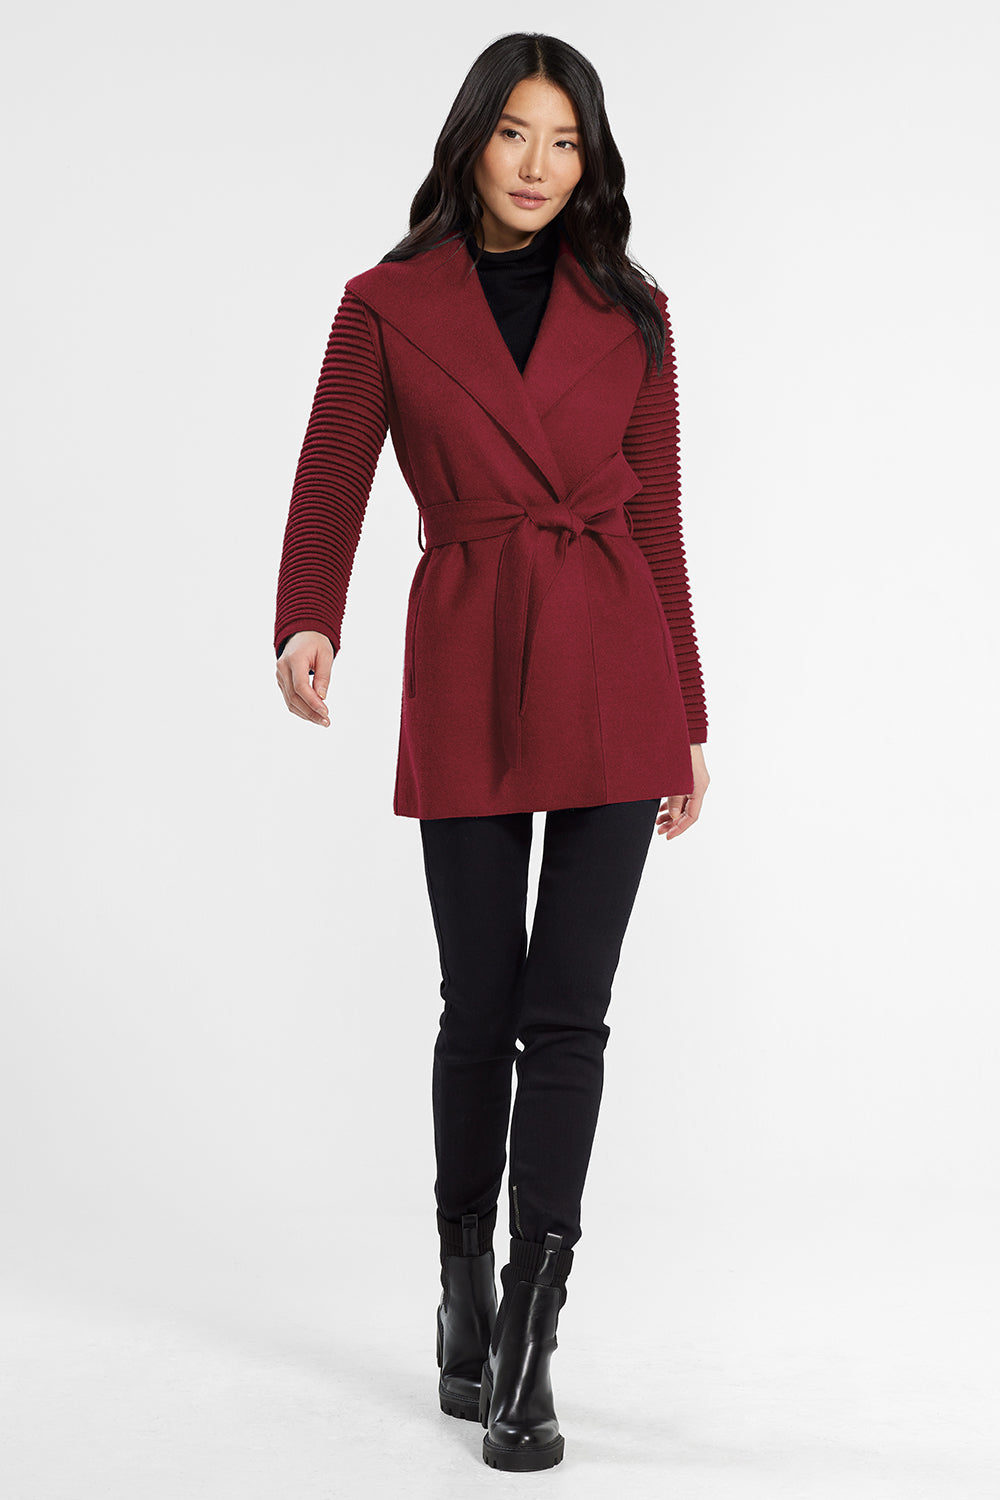 Sentaler Wrap Coat with Ribbed Sleeves featured in Superfine Alpaca and available in Wine. Seen from front.